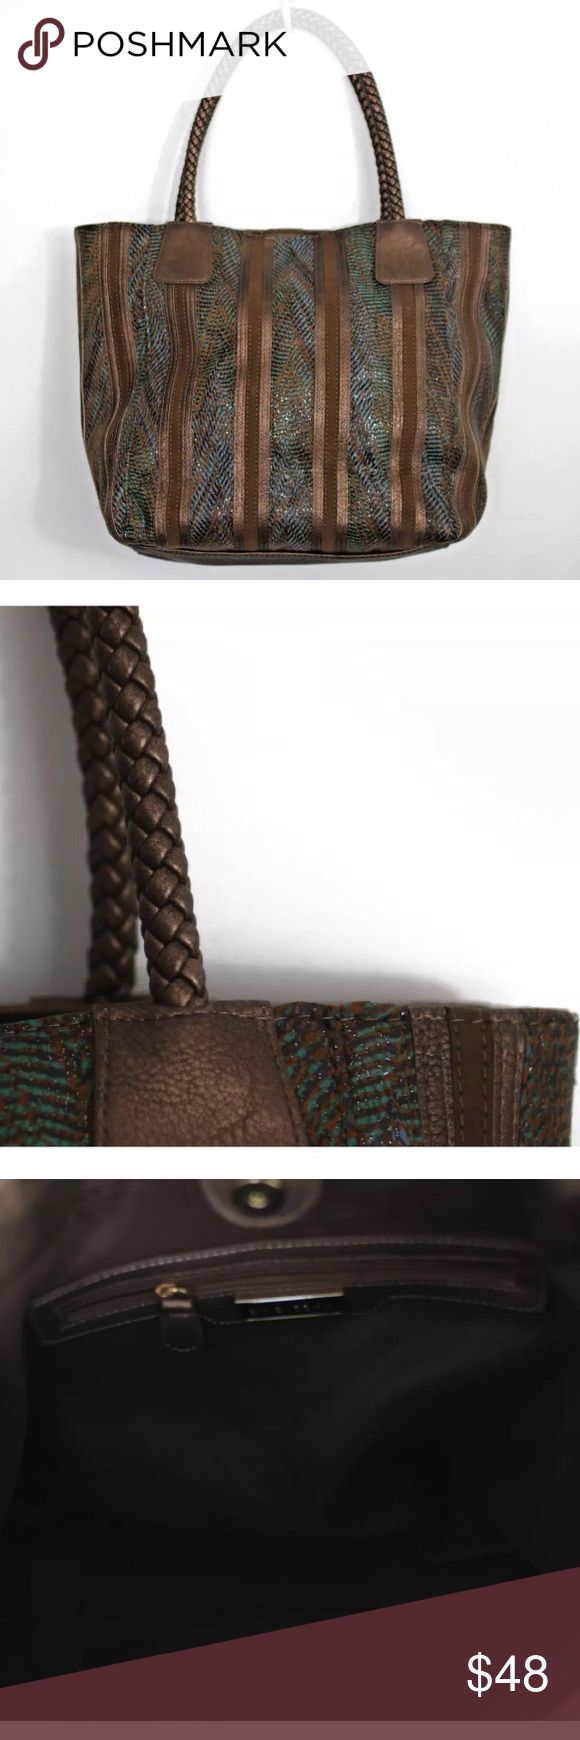 """Big Buddha bronze Tote Bag Height 13"""" x Length 18"""" x Depth 7"""" . Material is Faux Leather . New with tag. Big Buddha Bags Totes"""